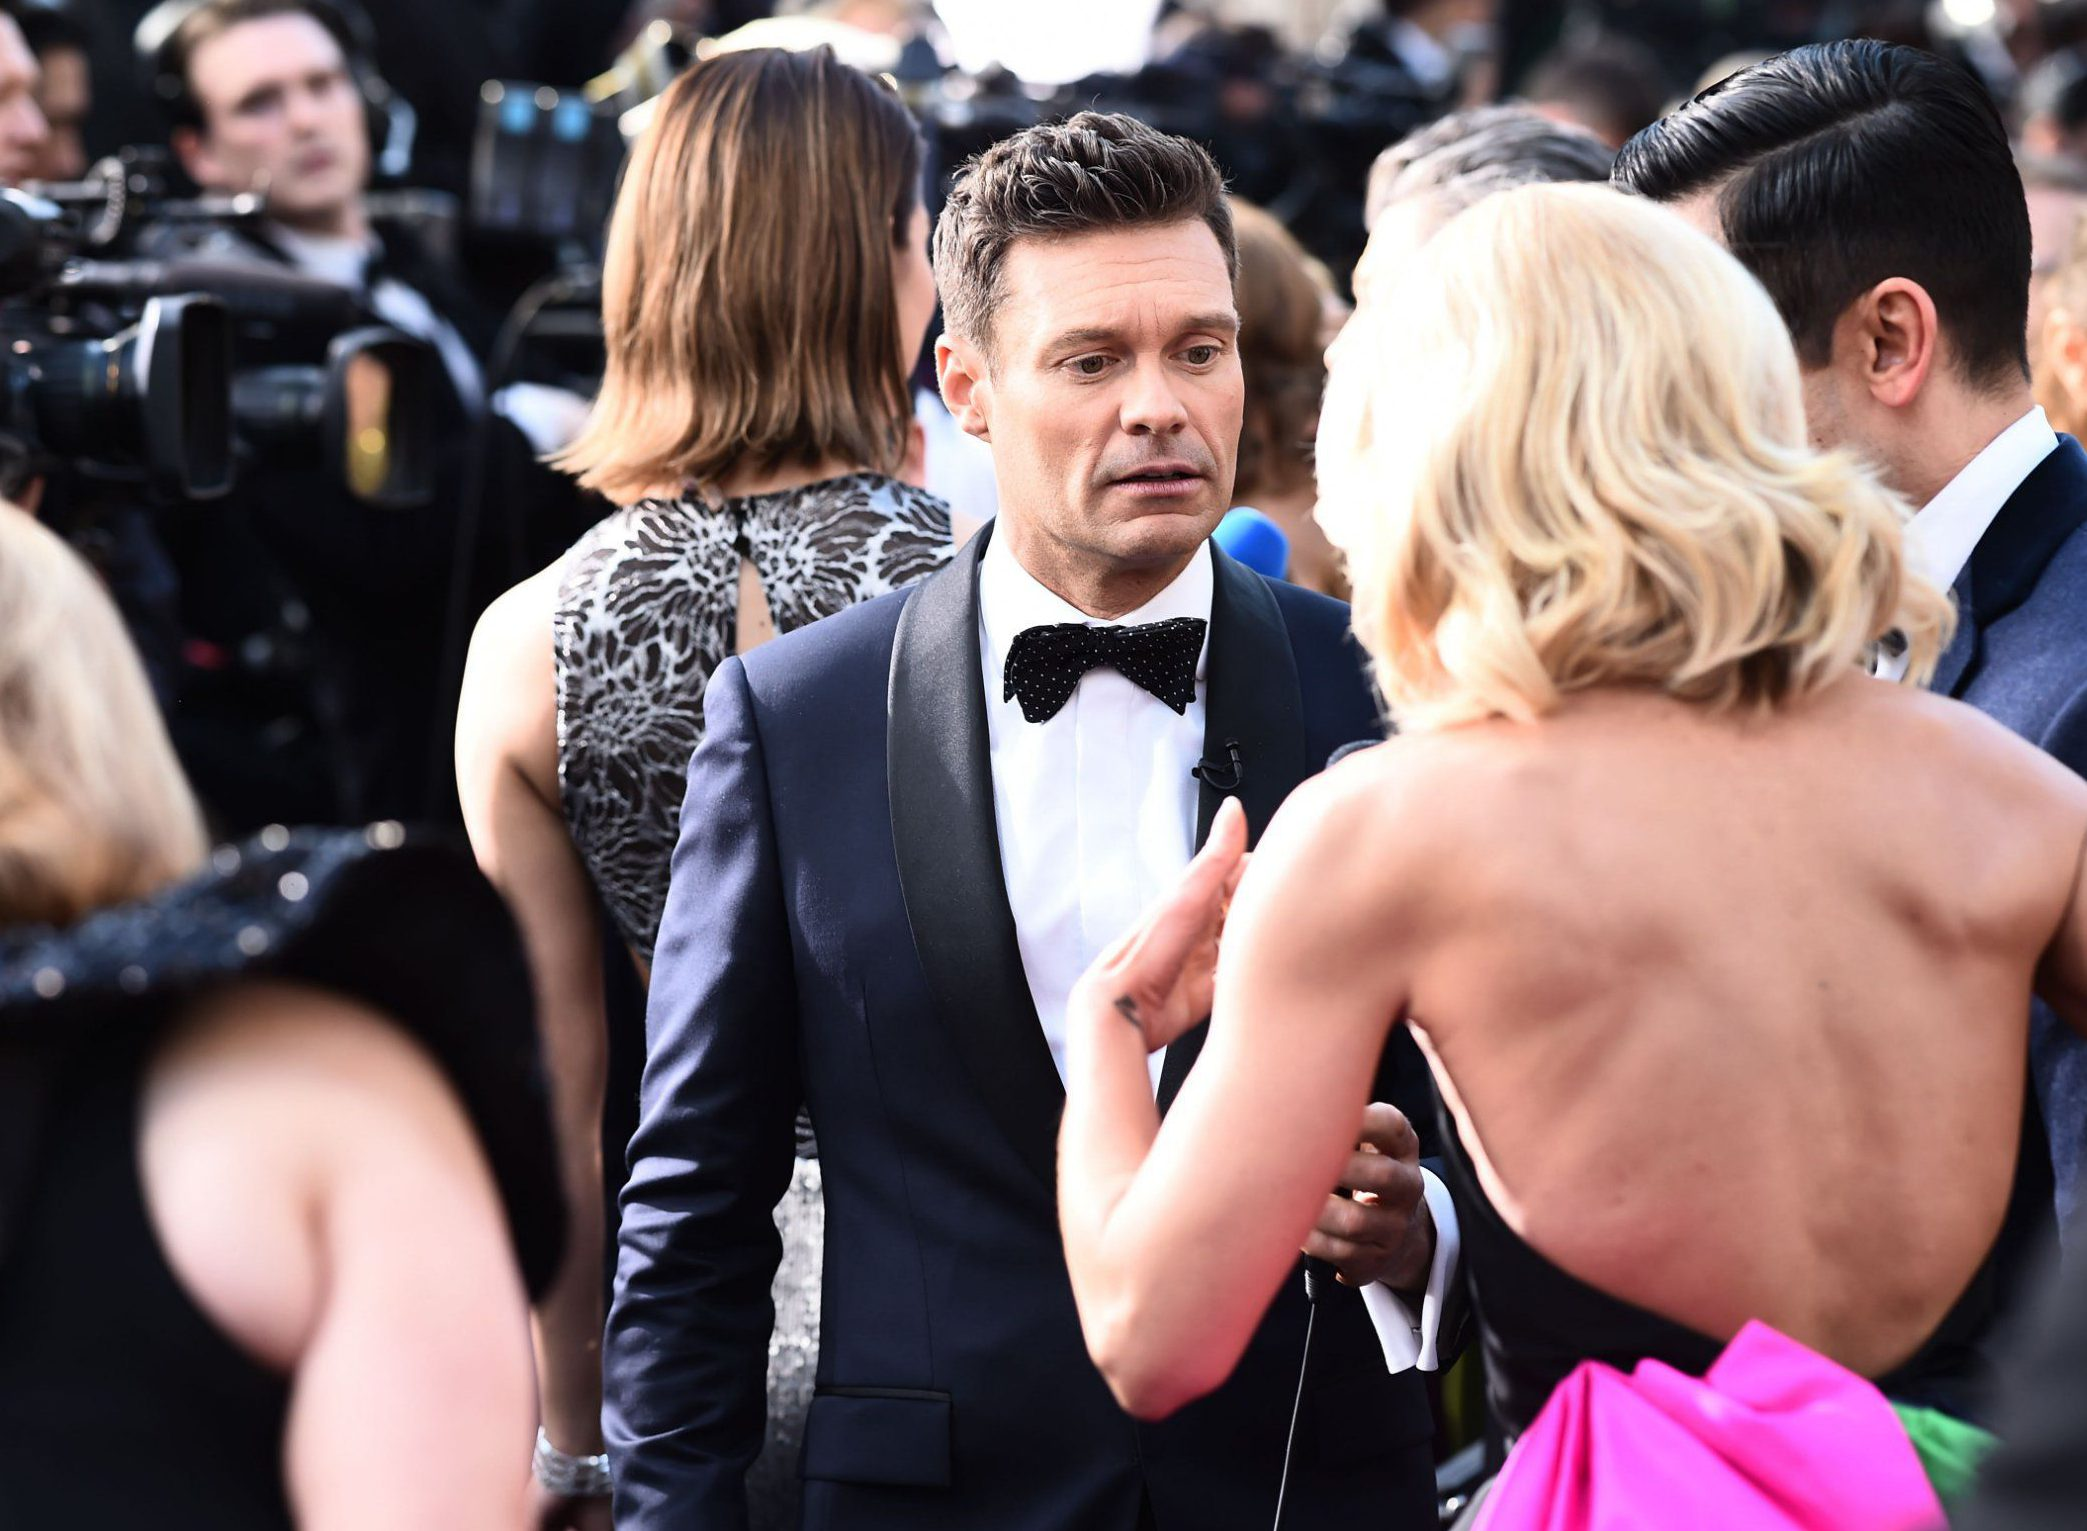 Ryan Seacrest only secures two celeb interviews in first hour of Oscars red carpet coverage